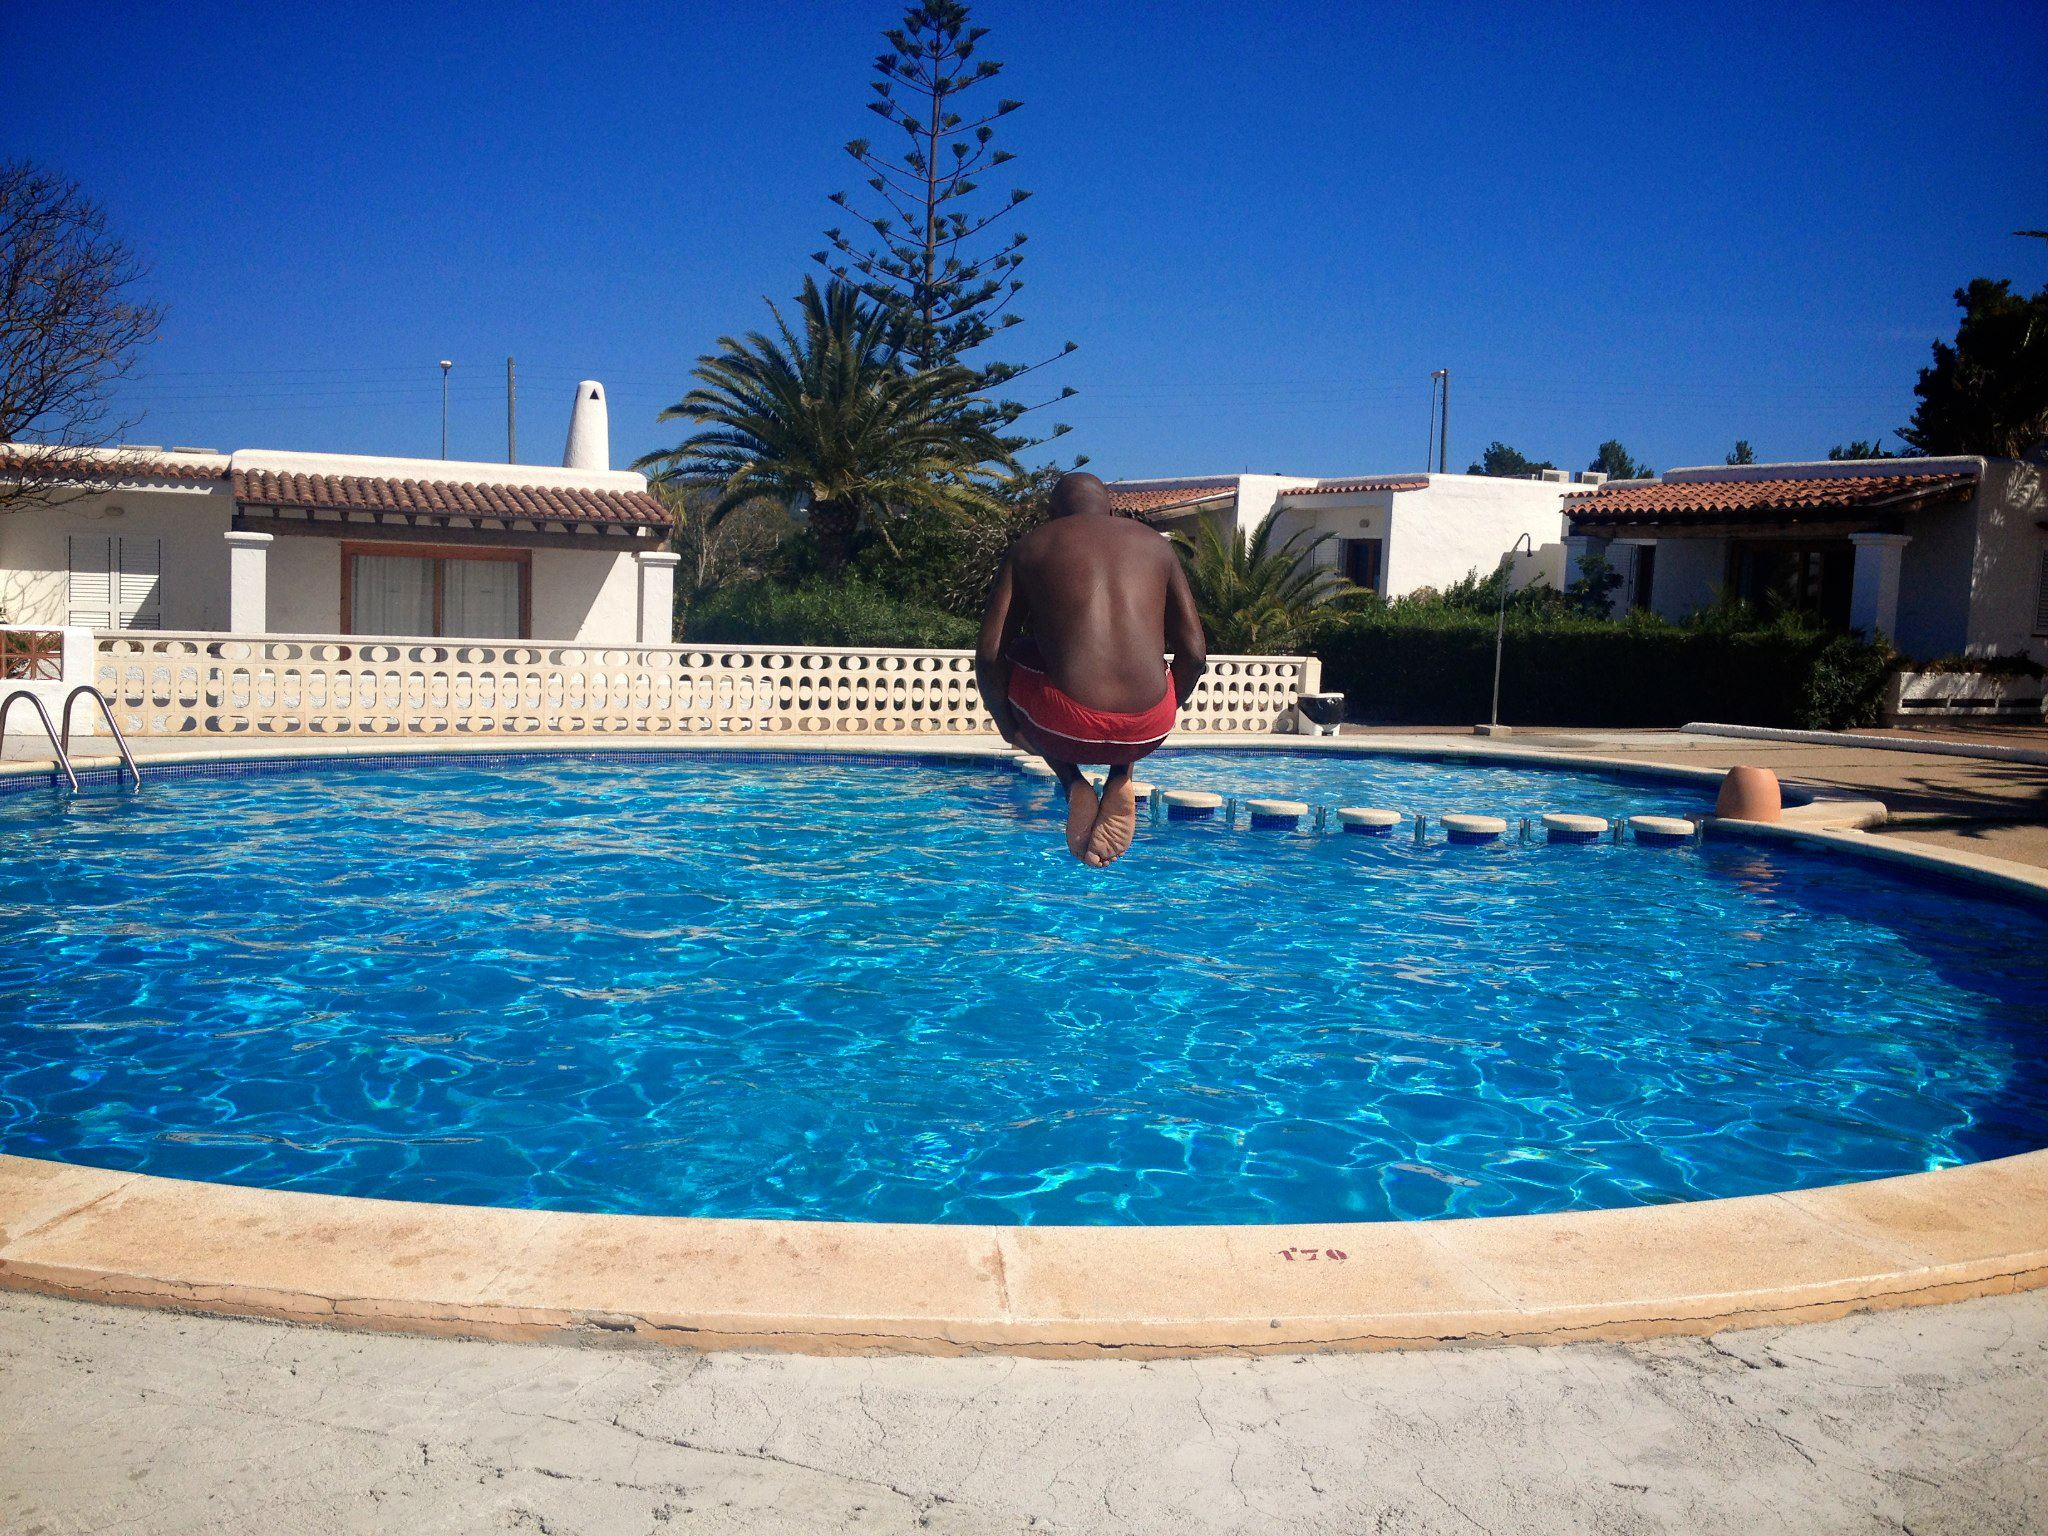 Sunshine, Sangria, Pool Diving, Friends, Fun in Ibiza, Spain on Holiday (1)